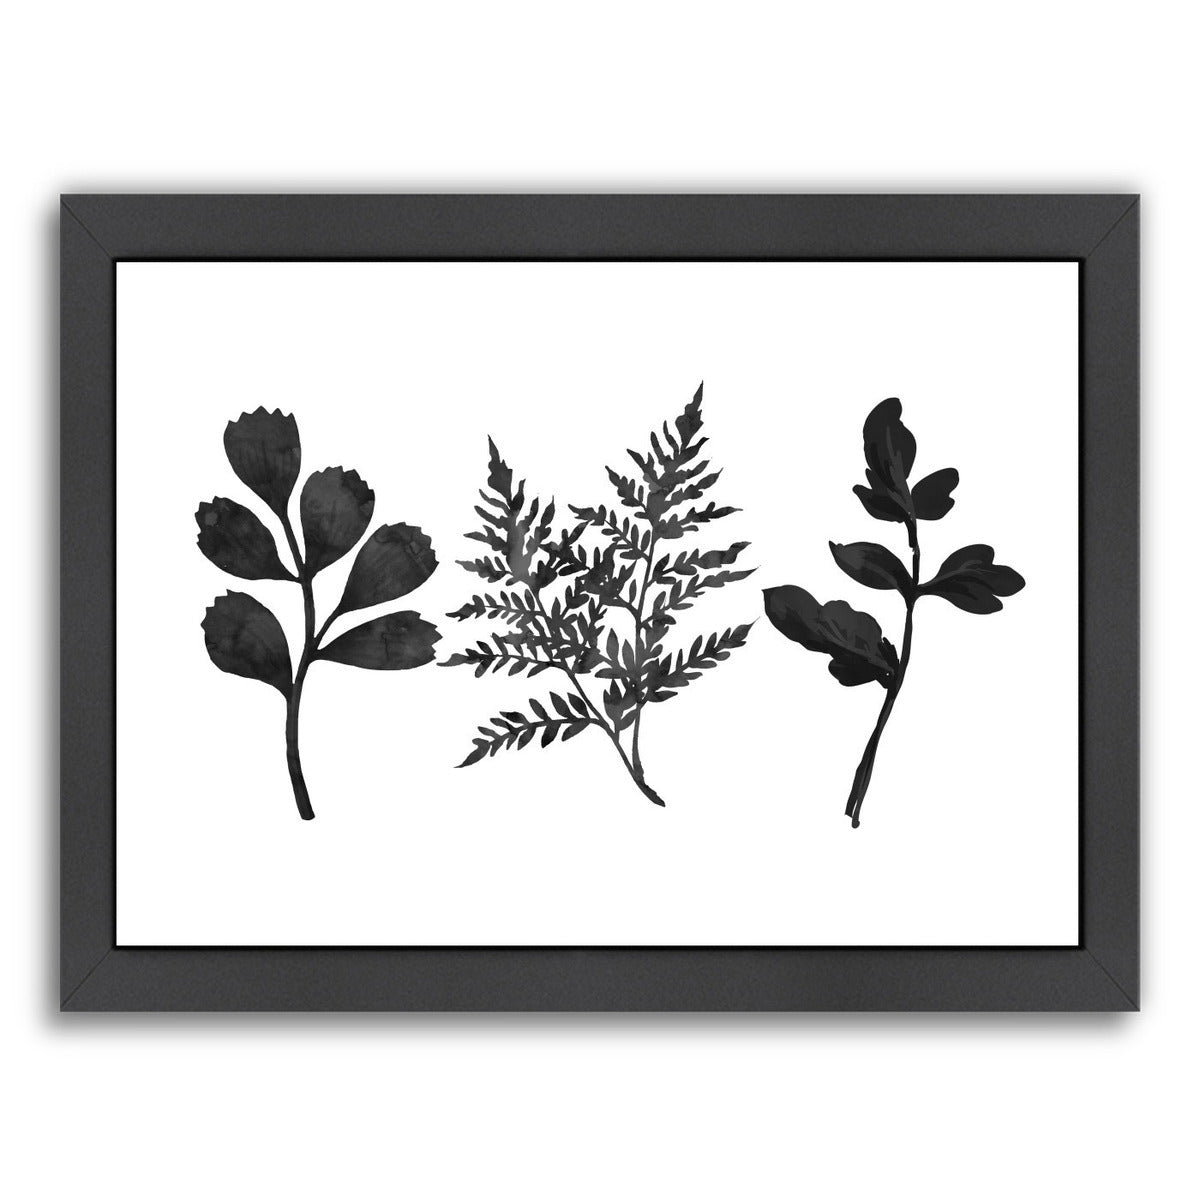 Tree Ferns by Peach & Gold Framed Print - Wall Art - Americanflat